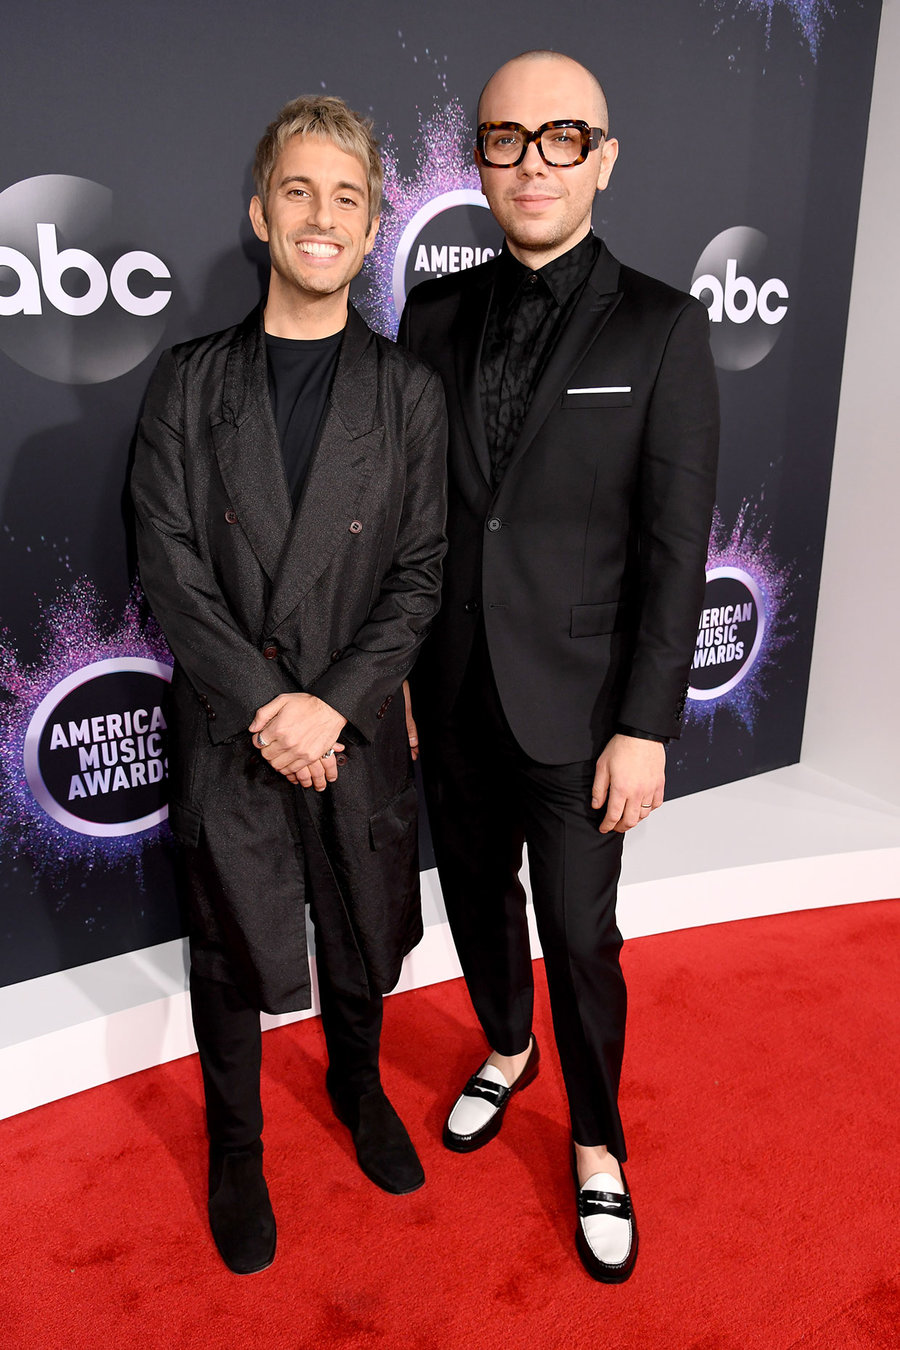 A Great Big World 2019AmericanMusicAwards - American Music Awards 2019: Фотографии с красной дорожки